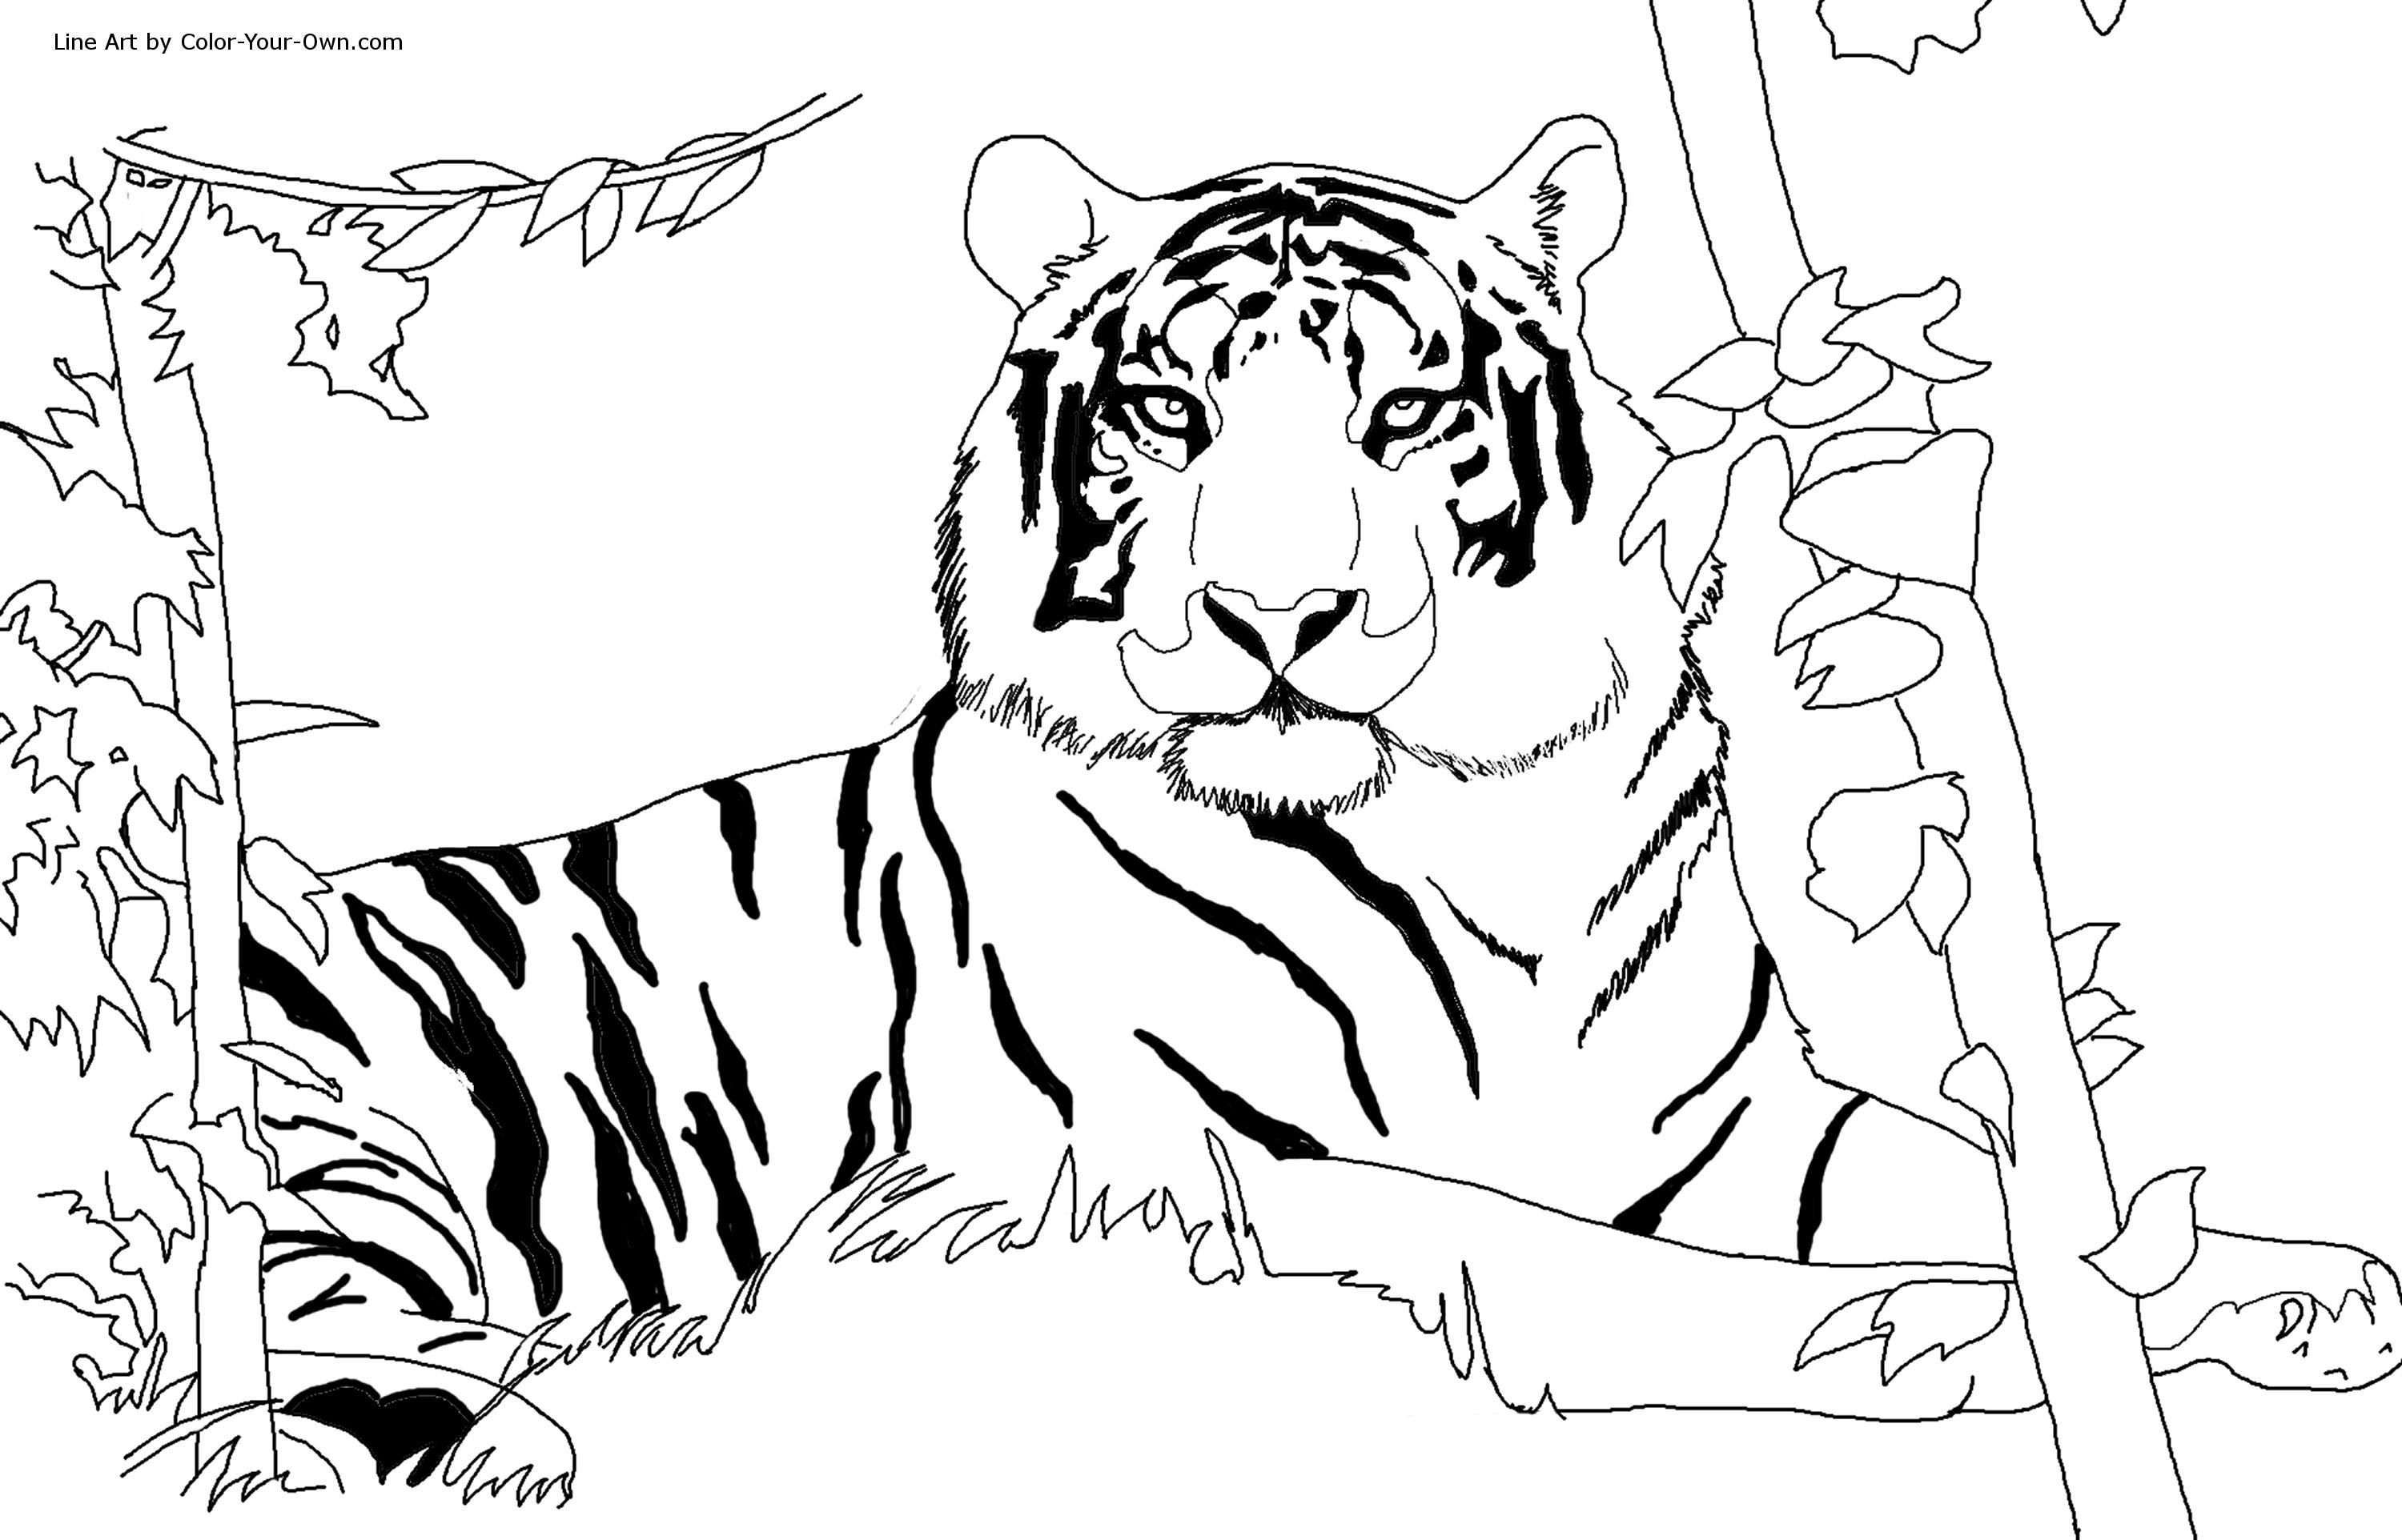 gorillia coloring pages free printable tiger coloring pages for kids images and line drawings pinterest tigers free printable and stenciling